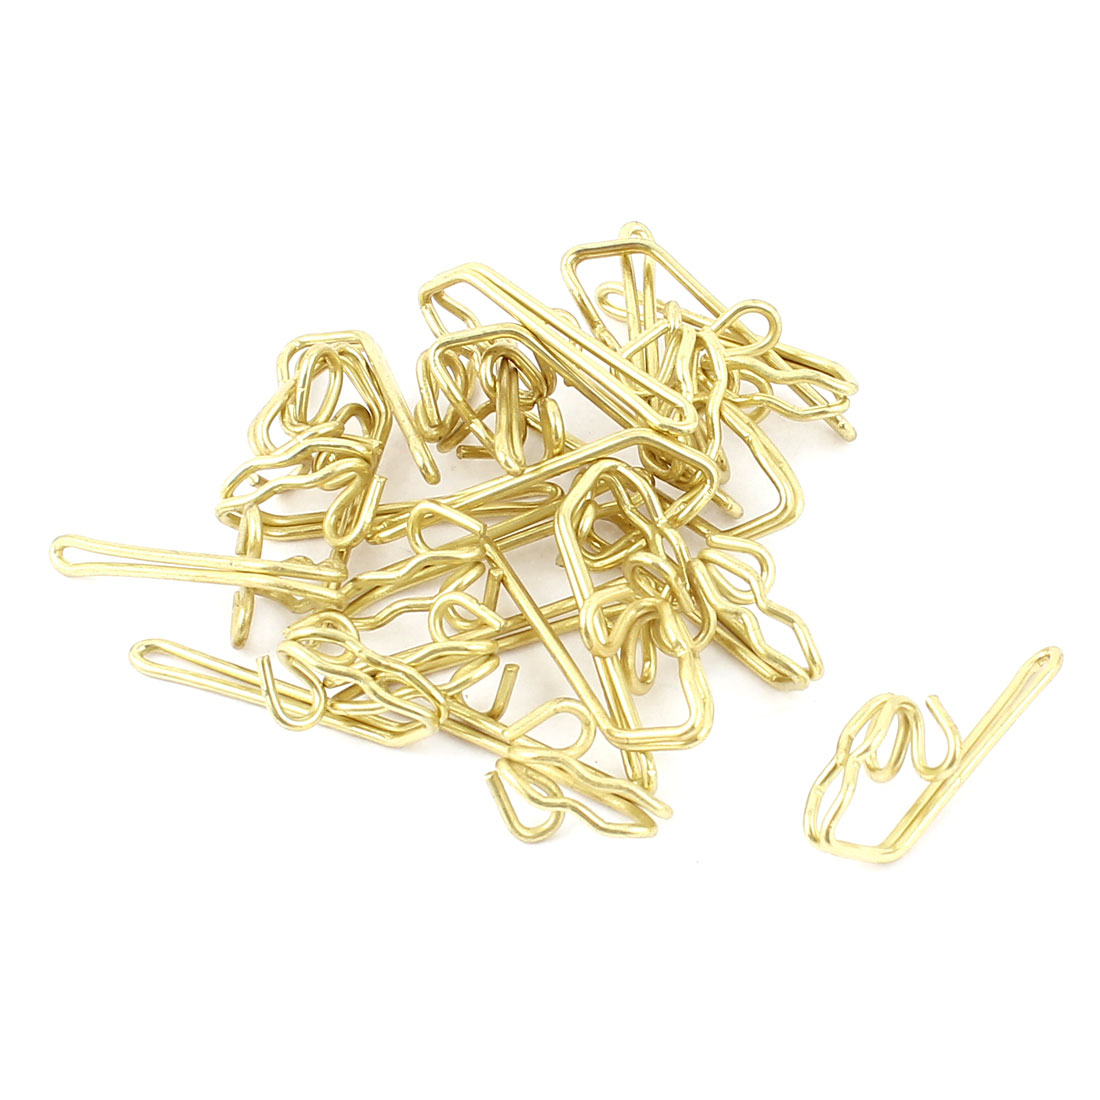 Gold Tone Metal Window Curtain Gather Pin Pinch Pleat Hooks Pleater 20pcs